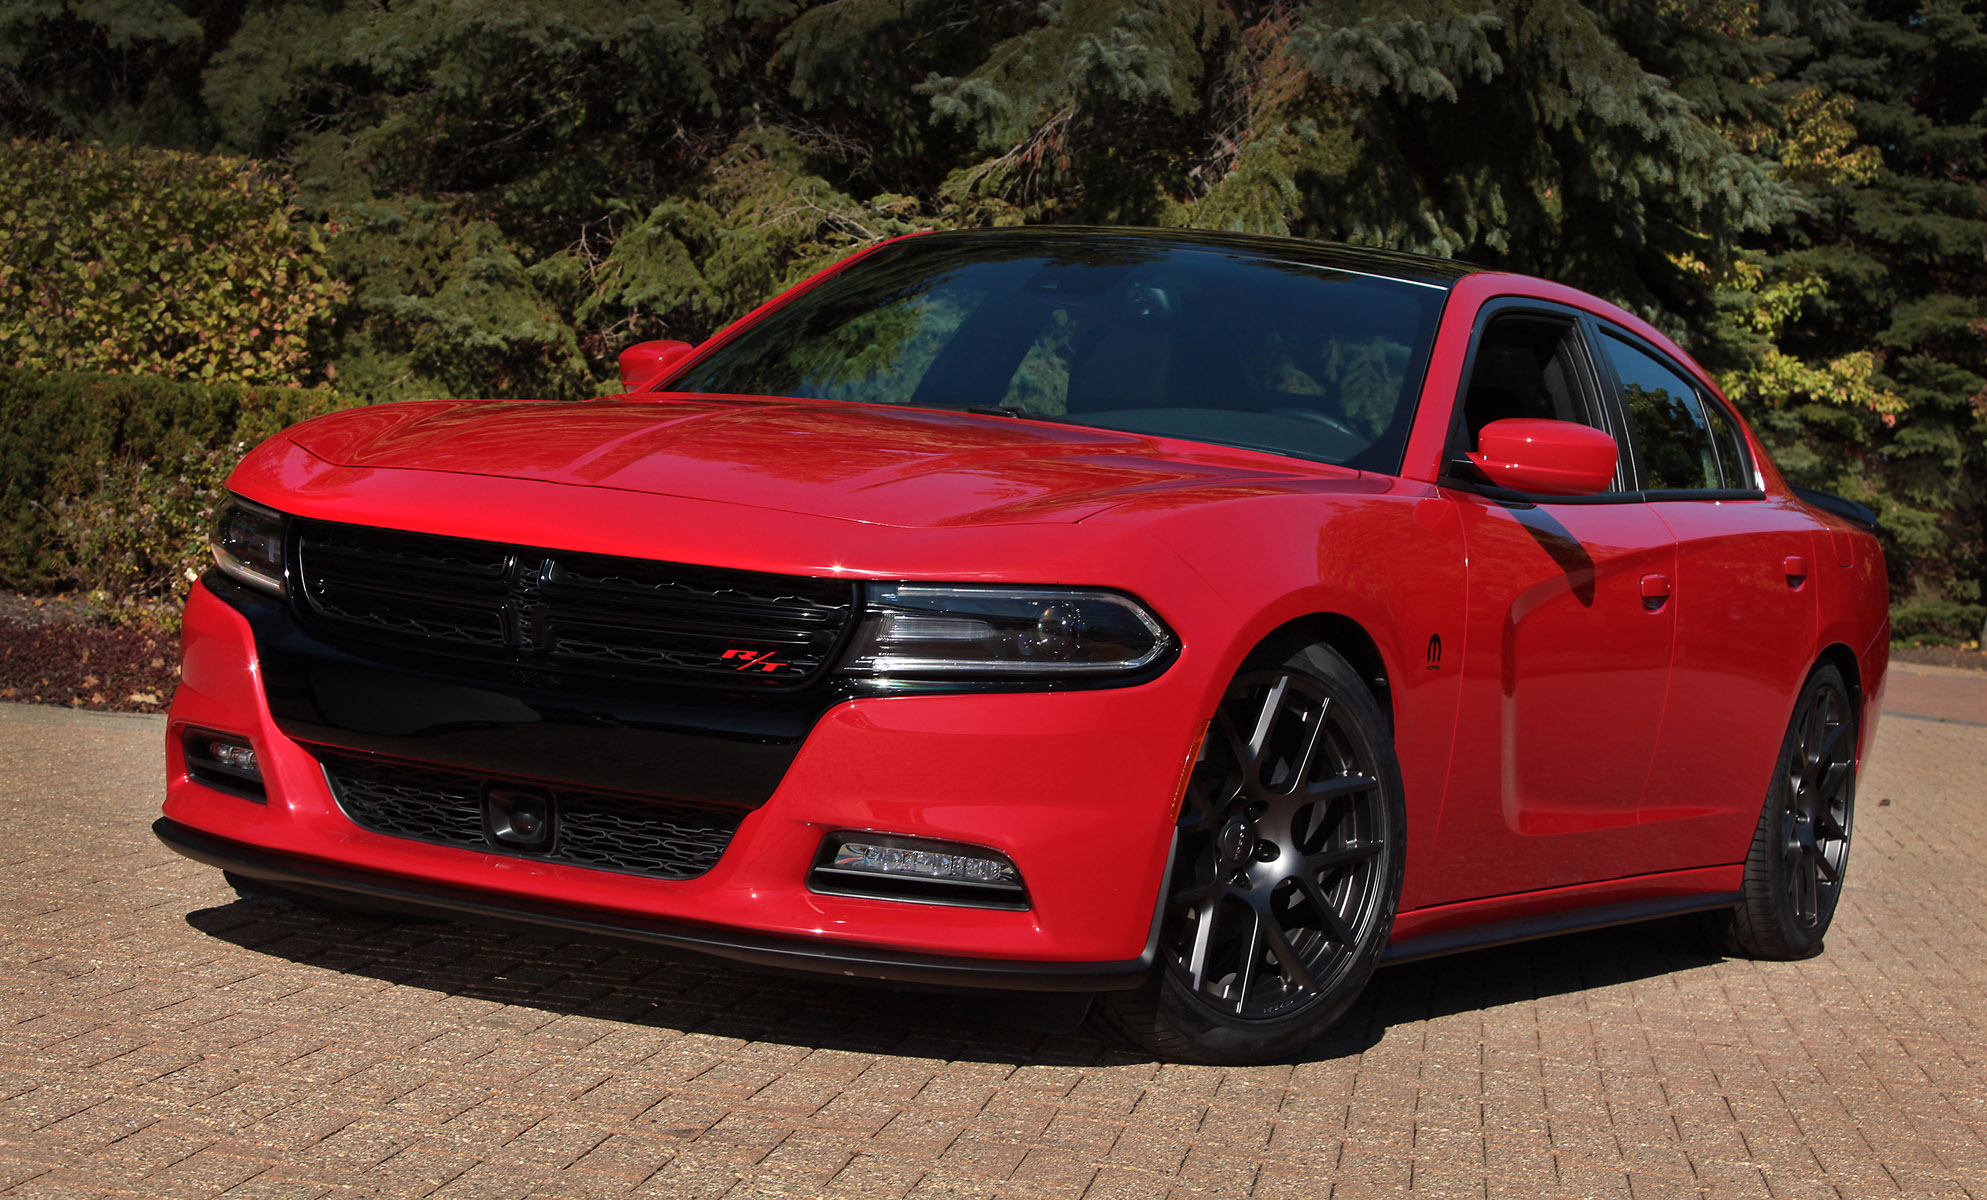 Dodge Charger R/T Mopar Concept - Muscle Cars News and ...